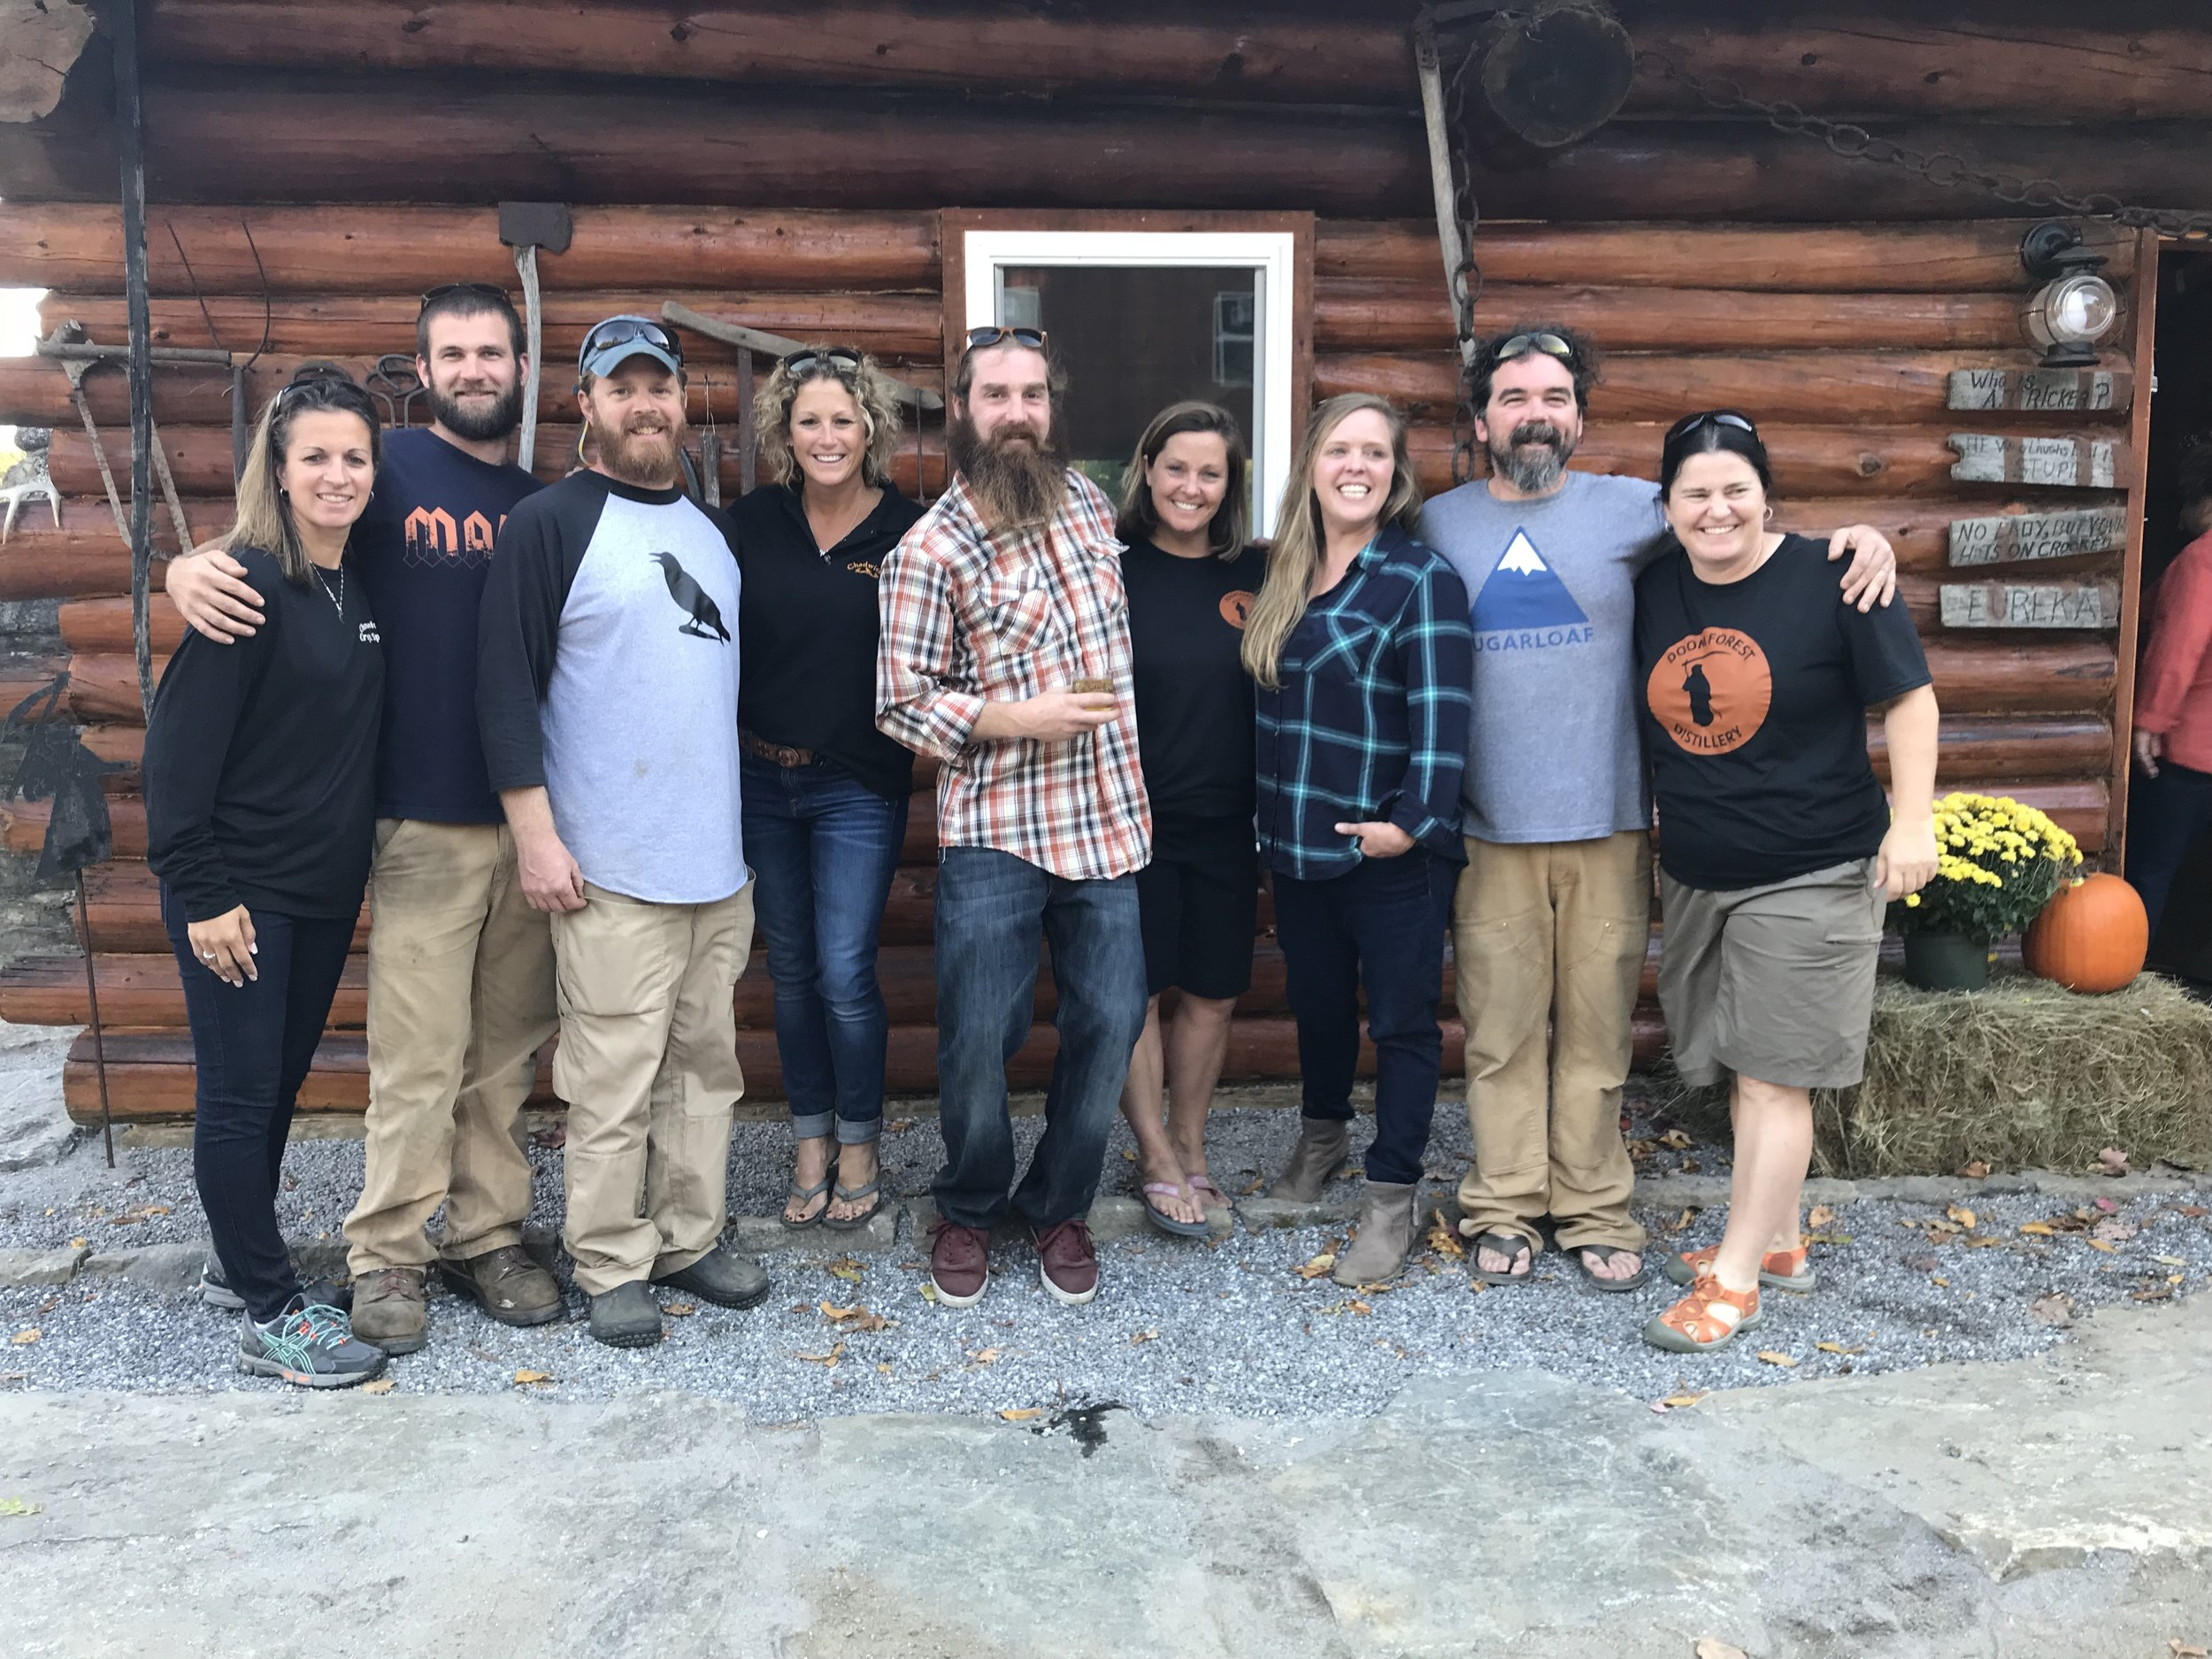 MAINE CABIN MASTERS AND THE DOOM FOREST DISTILLERY CREW (THE NEW SEASON OF THE MAINE CABIN MASTERS WILL BEGIN NOVEMBER 2017 ON THE DIY NETWORK)